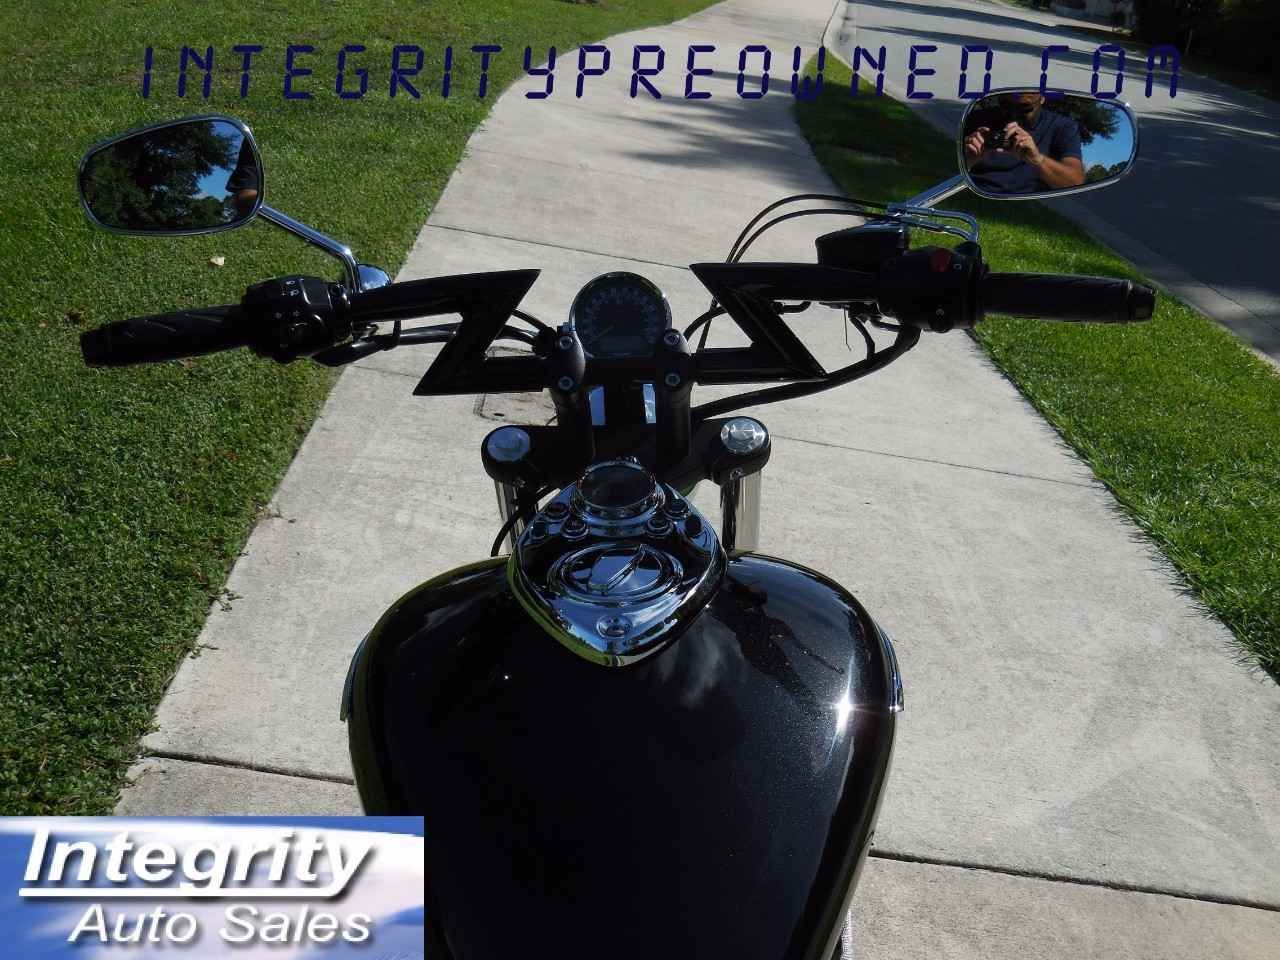 Used 2012 Triumph SPEEDMASTER Motorcycles For Sale in